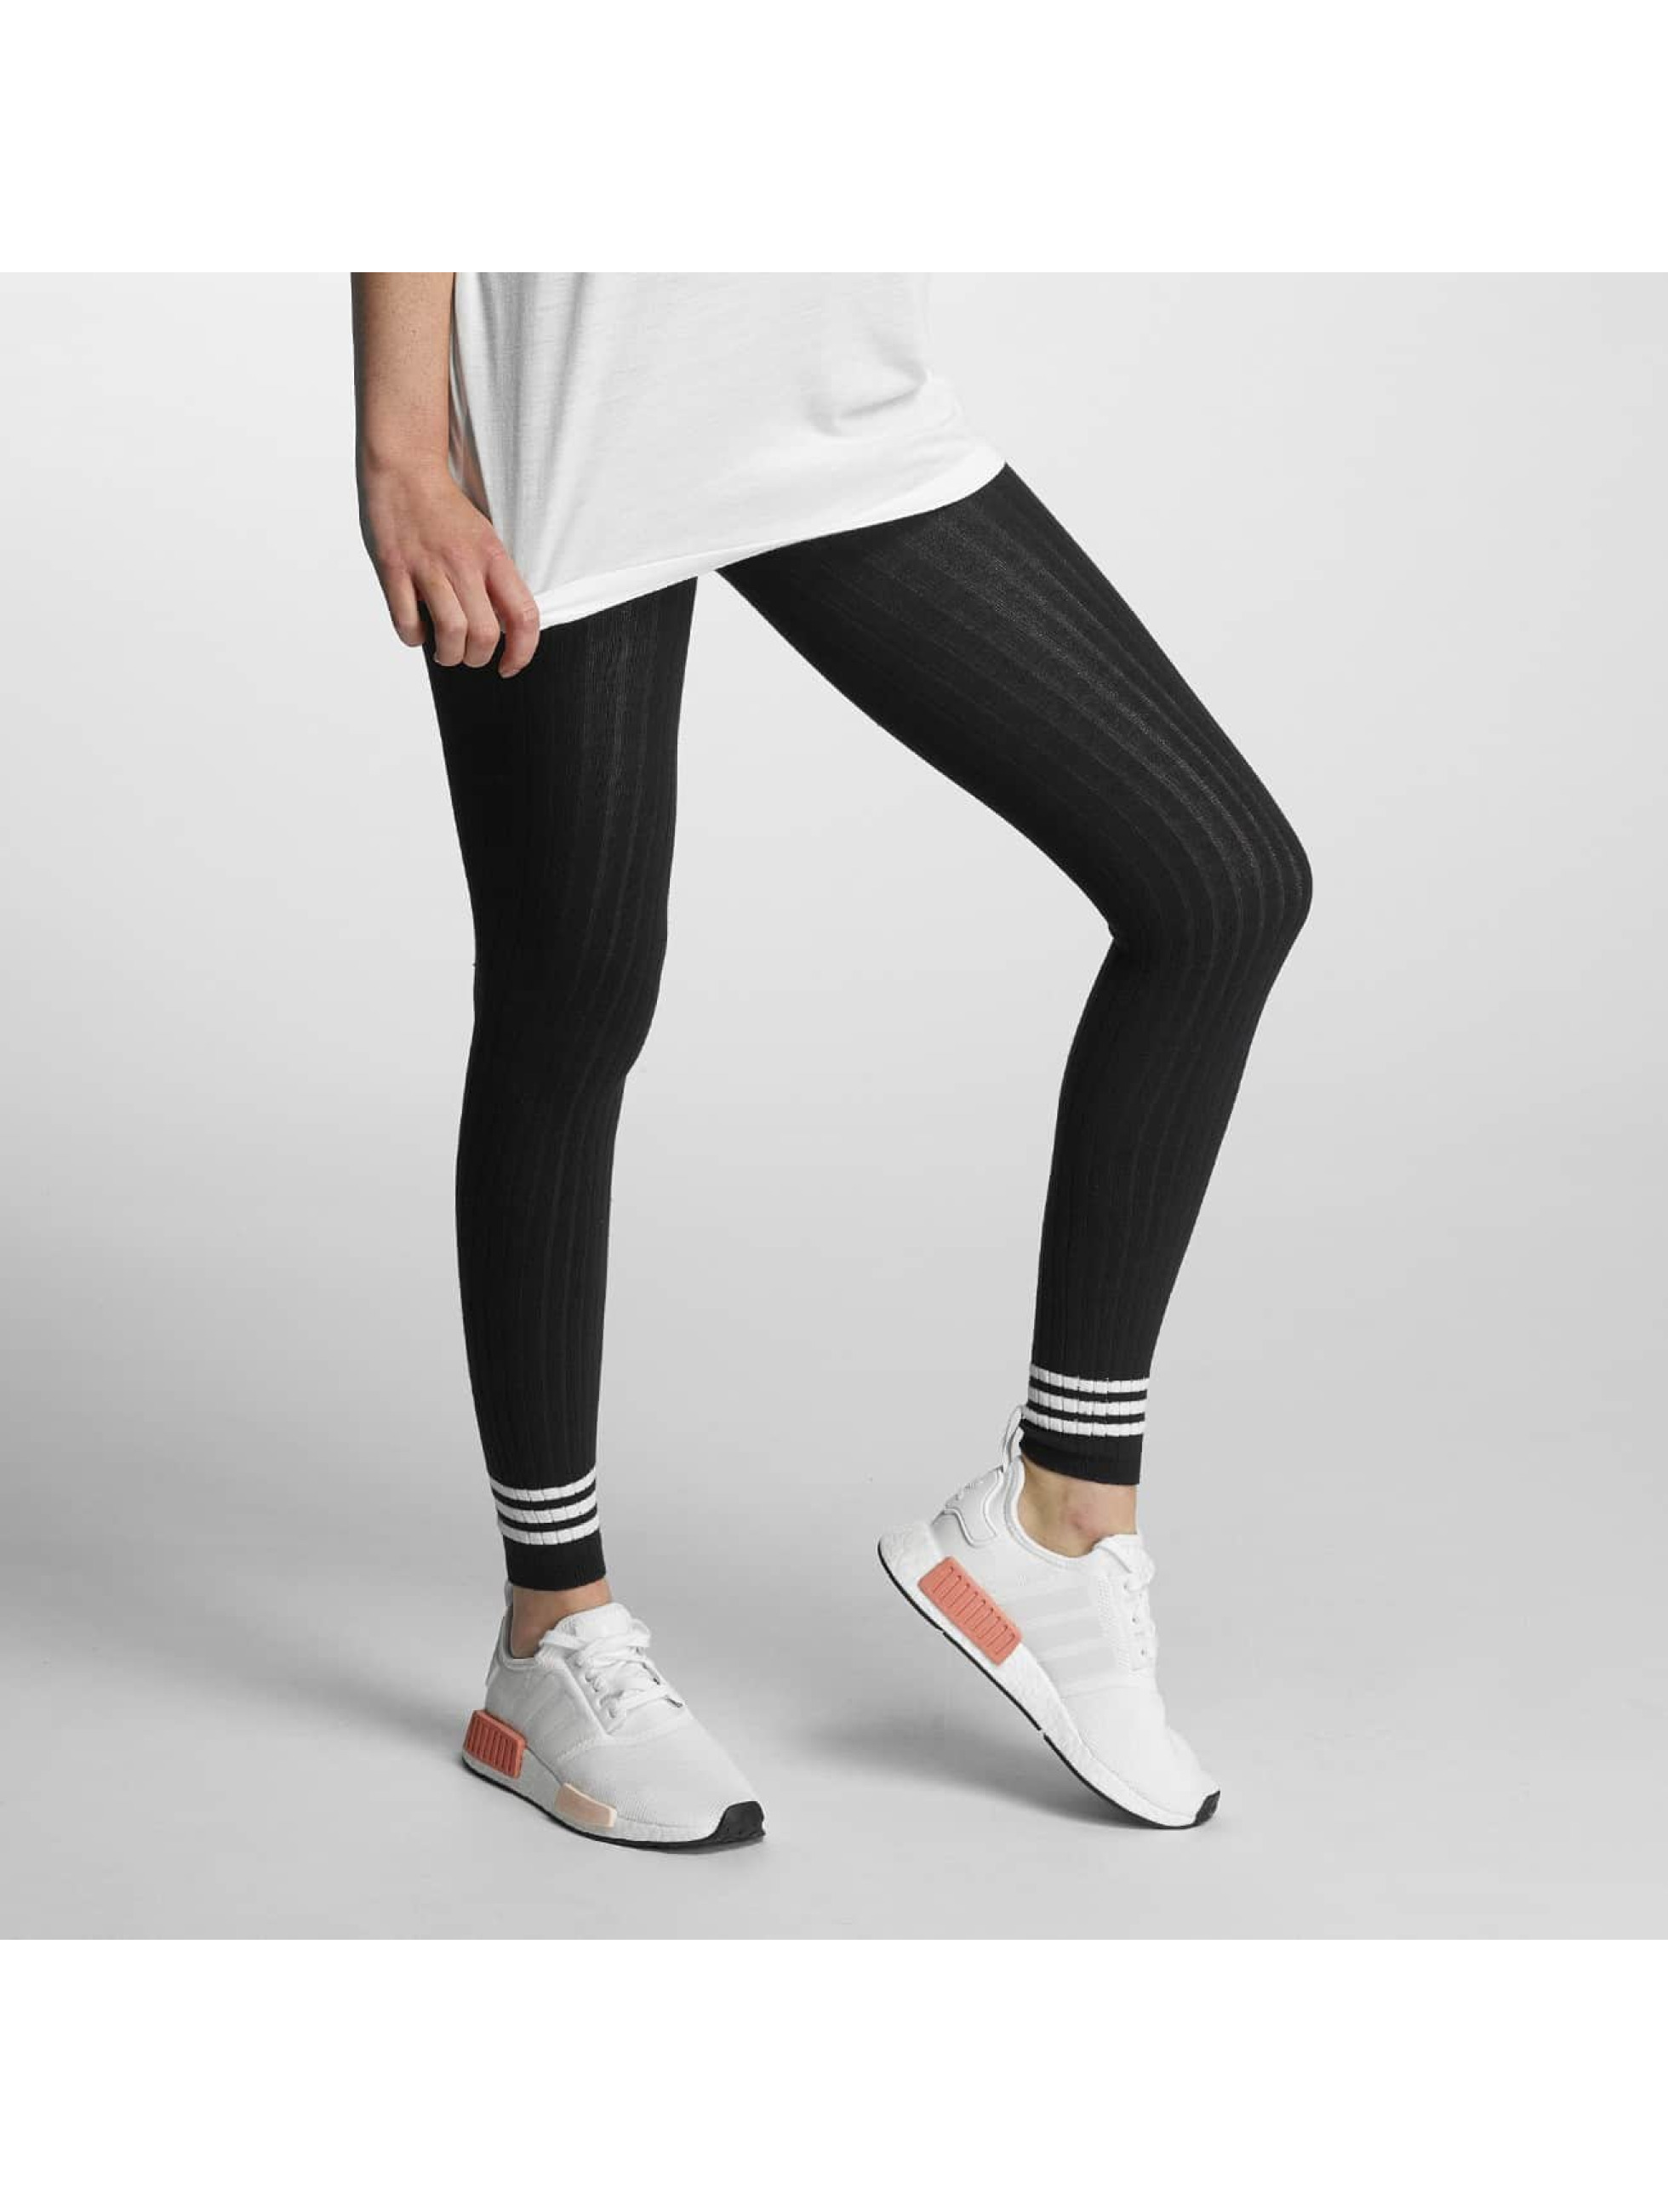 adidas originals Leggingsit/Treggingsit 3 Stripes sininen